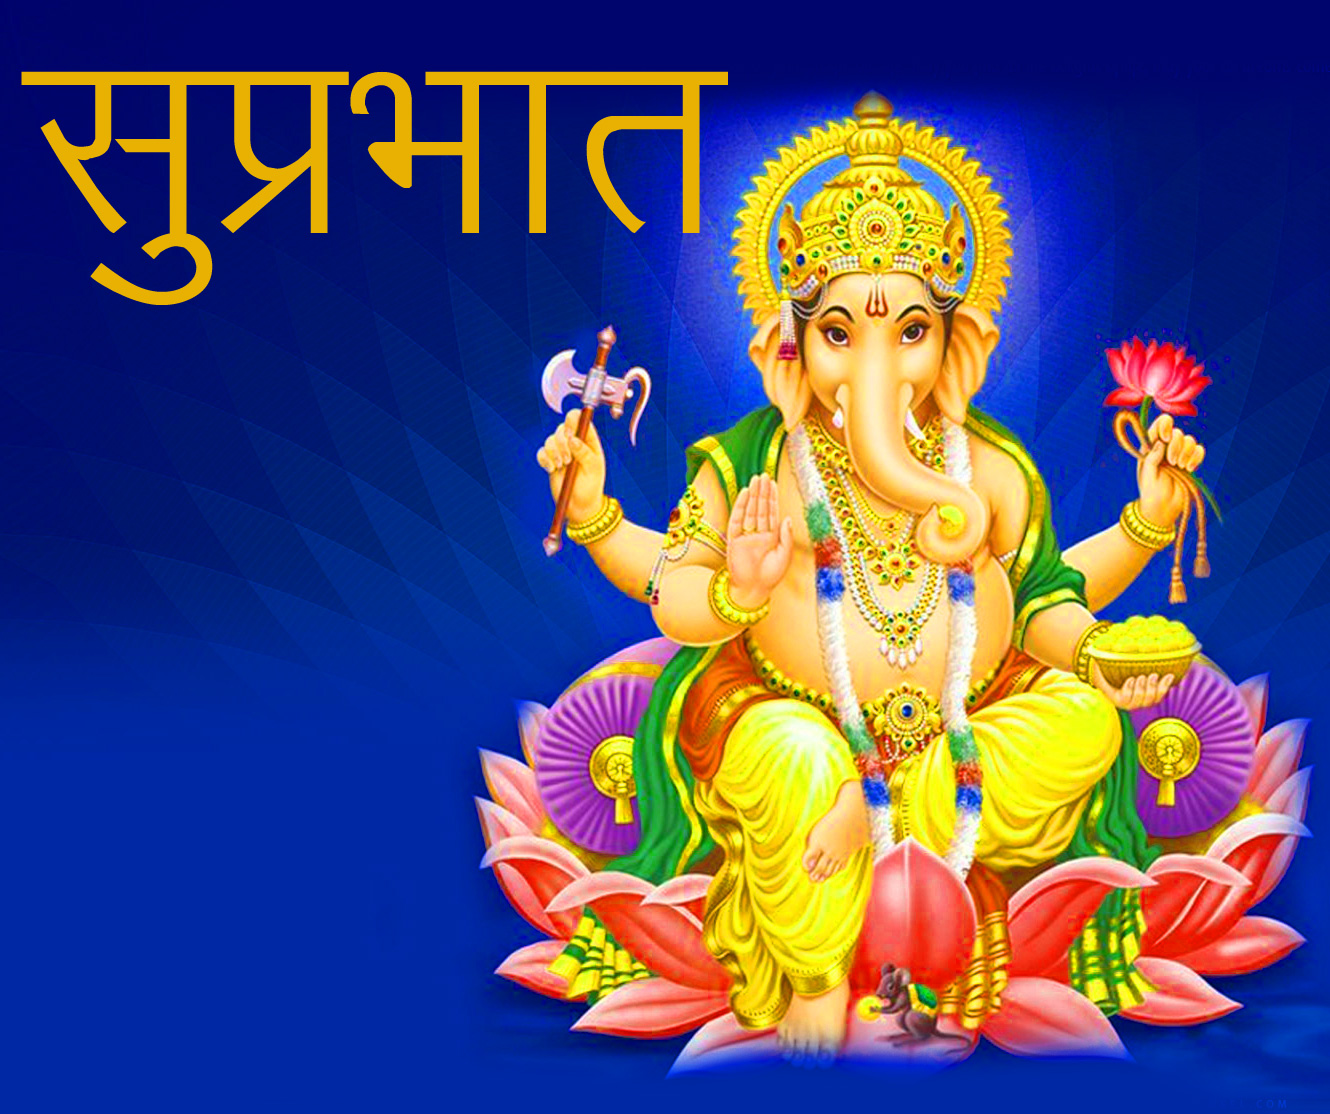 God Ganesha Good Morning Wishes Pics Fee Download for Whats app Friend